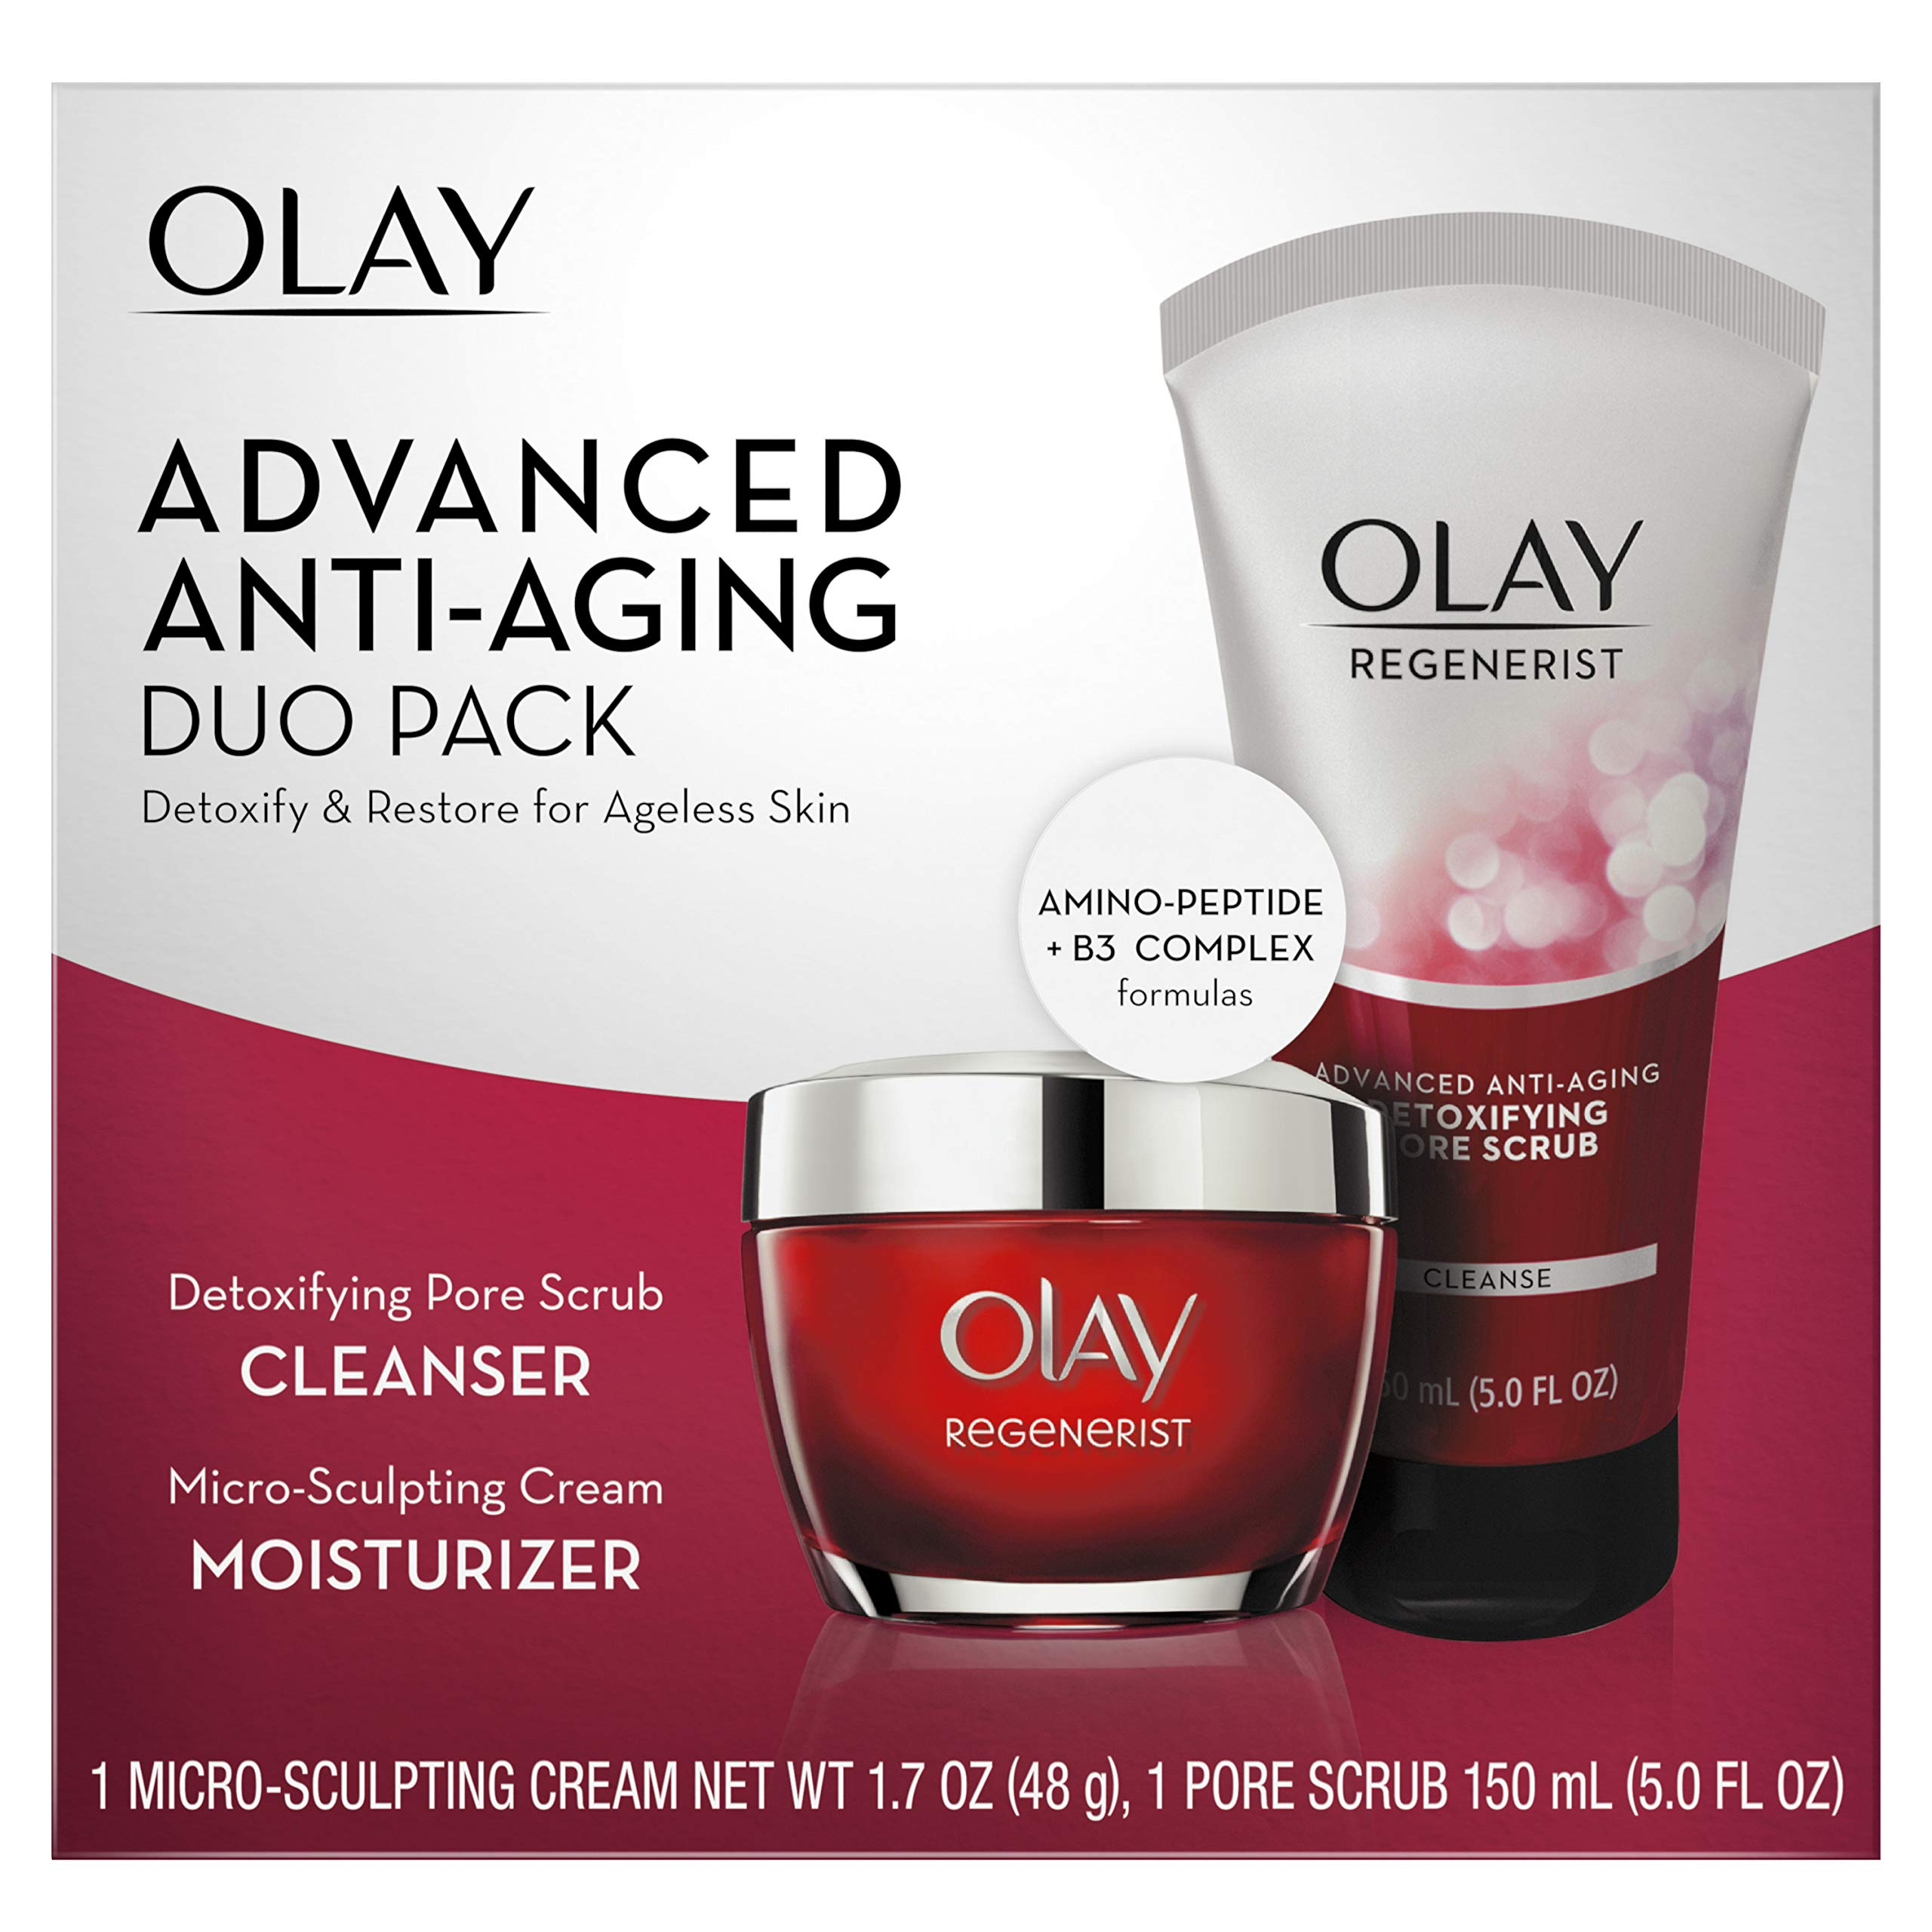 Face Wash by Olay Regenerist Advanced Anti-Aging Pore Scrub Cleanser (5.0 Oz) and Micro-Sculpting Face Moisturizer Cream (1.7 Oz) Skin Care Duo Pack, Total 6.7 Ounces Packaging may Vary by Olay